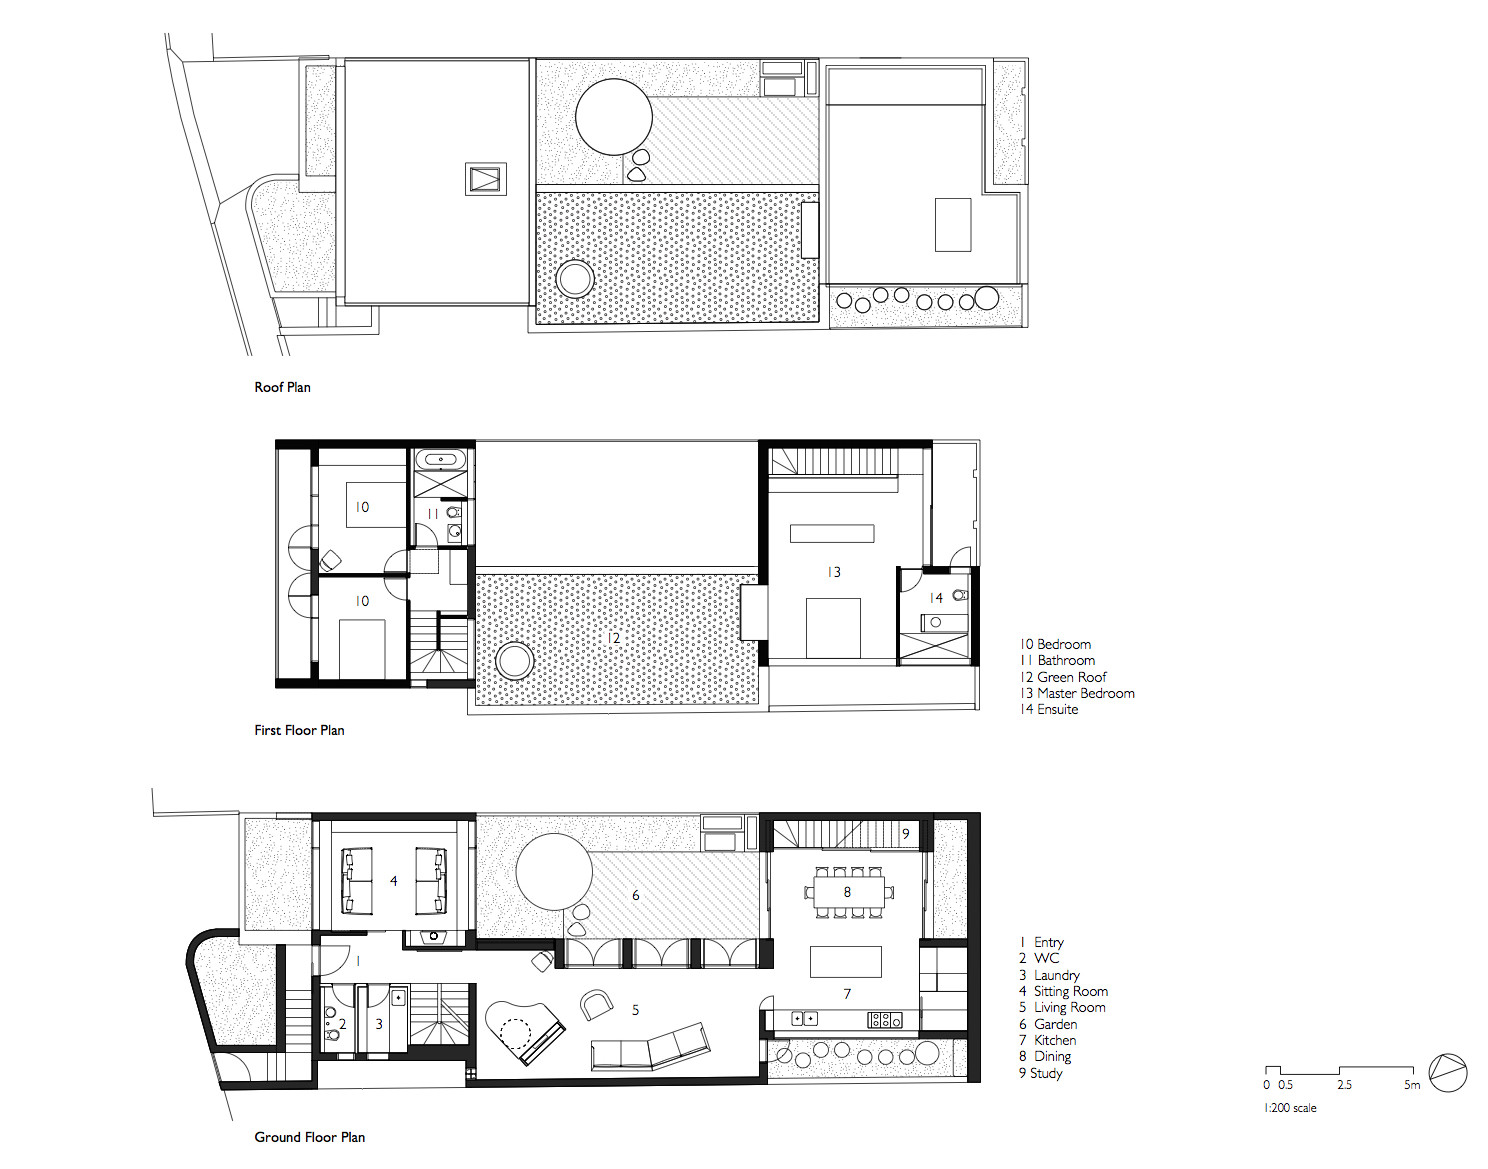 Courtyard house aileen sage architects archdaily for Courtyard house plans